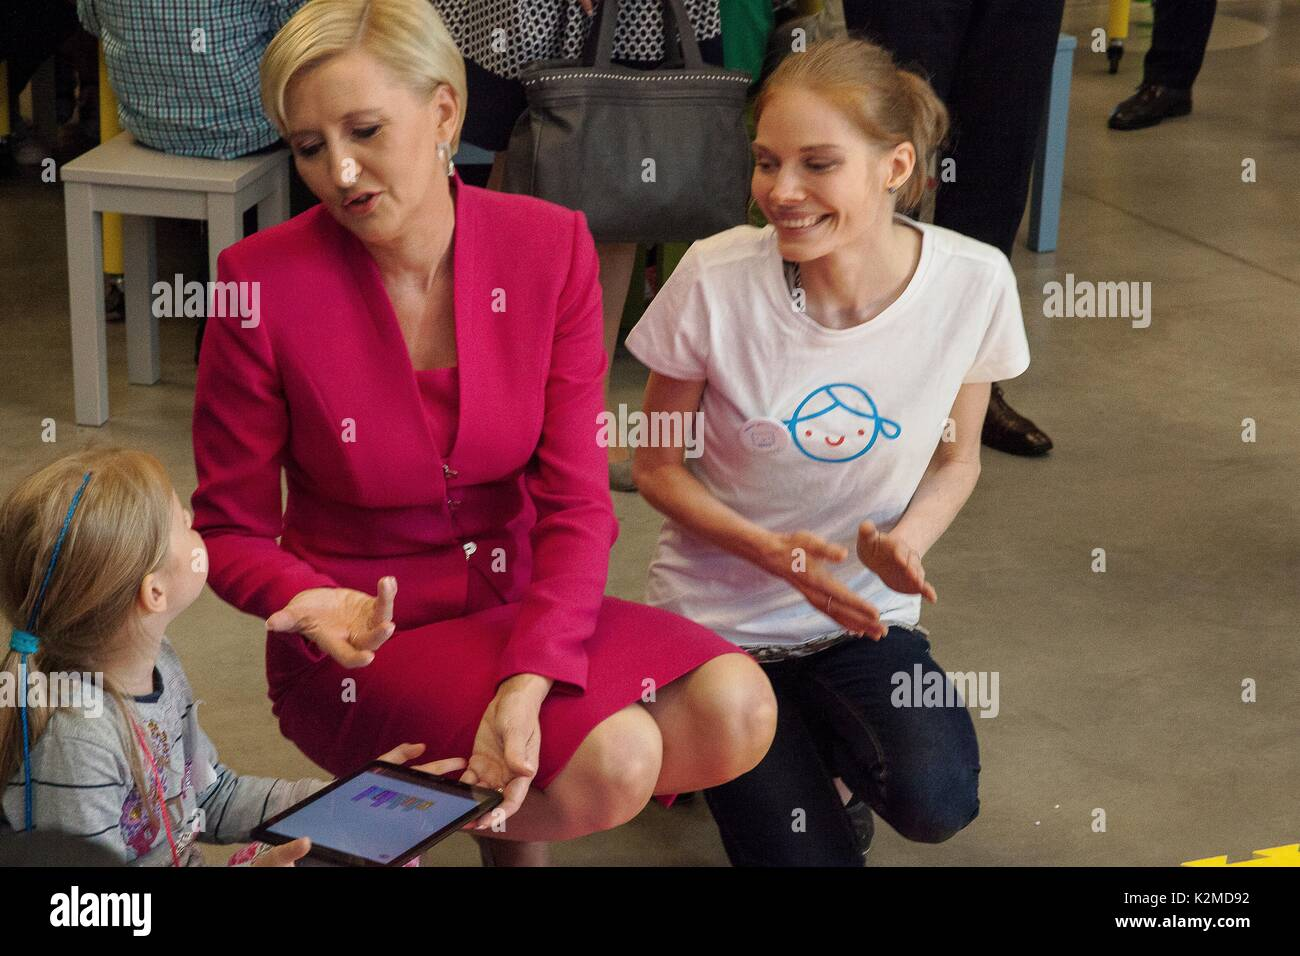 Polish First Lady Agata Kornhauser-Duda, with students during a visit the Copernicus Science Center July 6, 2017 in Warsaw, Poland. - Stock Image